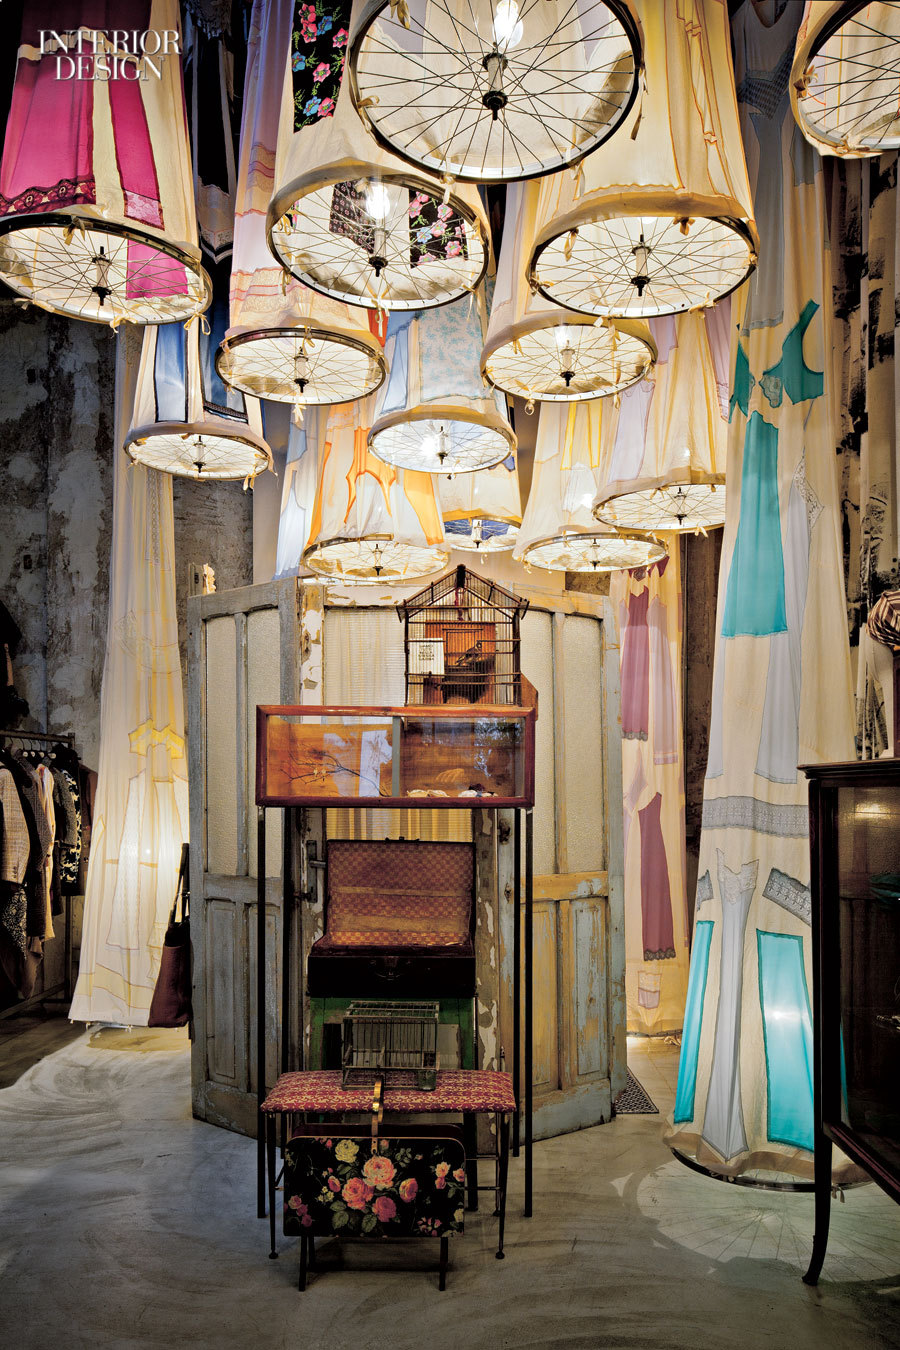 Grandma's attic goes surreal with pendant fixtures fashioned from vintage petticoats and bicycle wheels at Antonio Marras, occupying a former auto-repair shop in Milan. Photography by Bamberghi/Photofoyer. Go here for a global tour of luxe retail design.